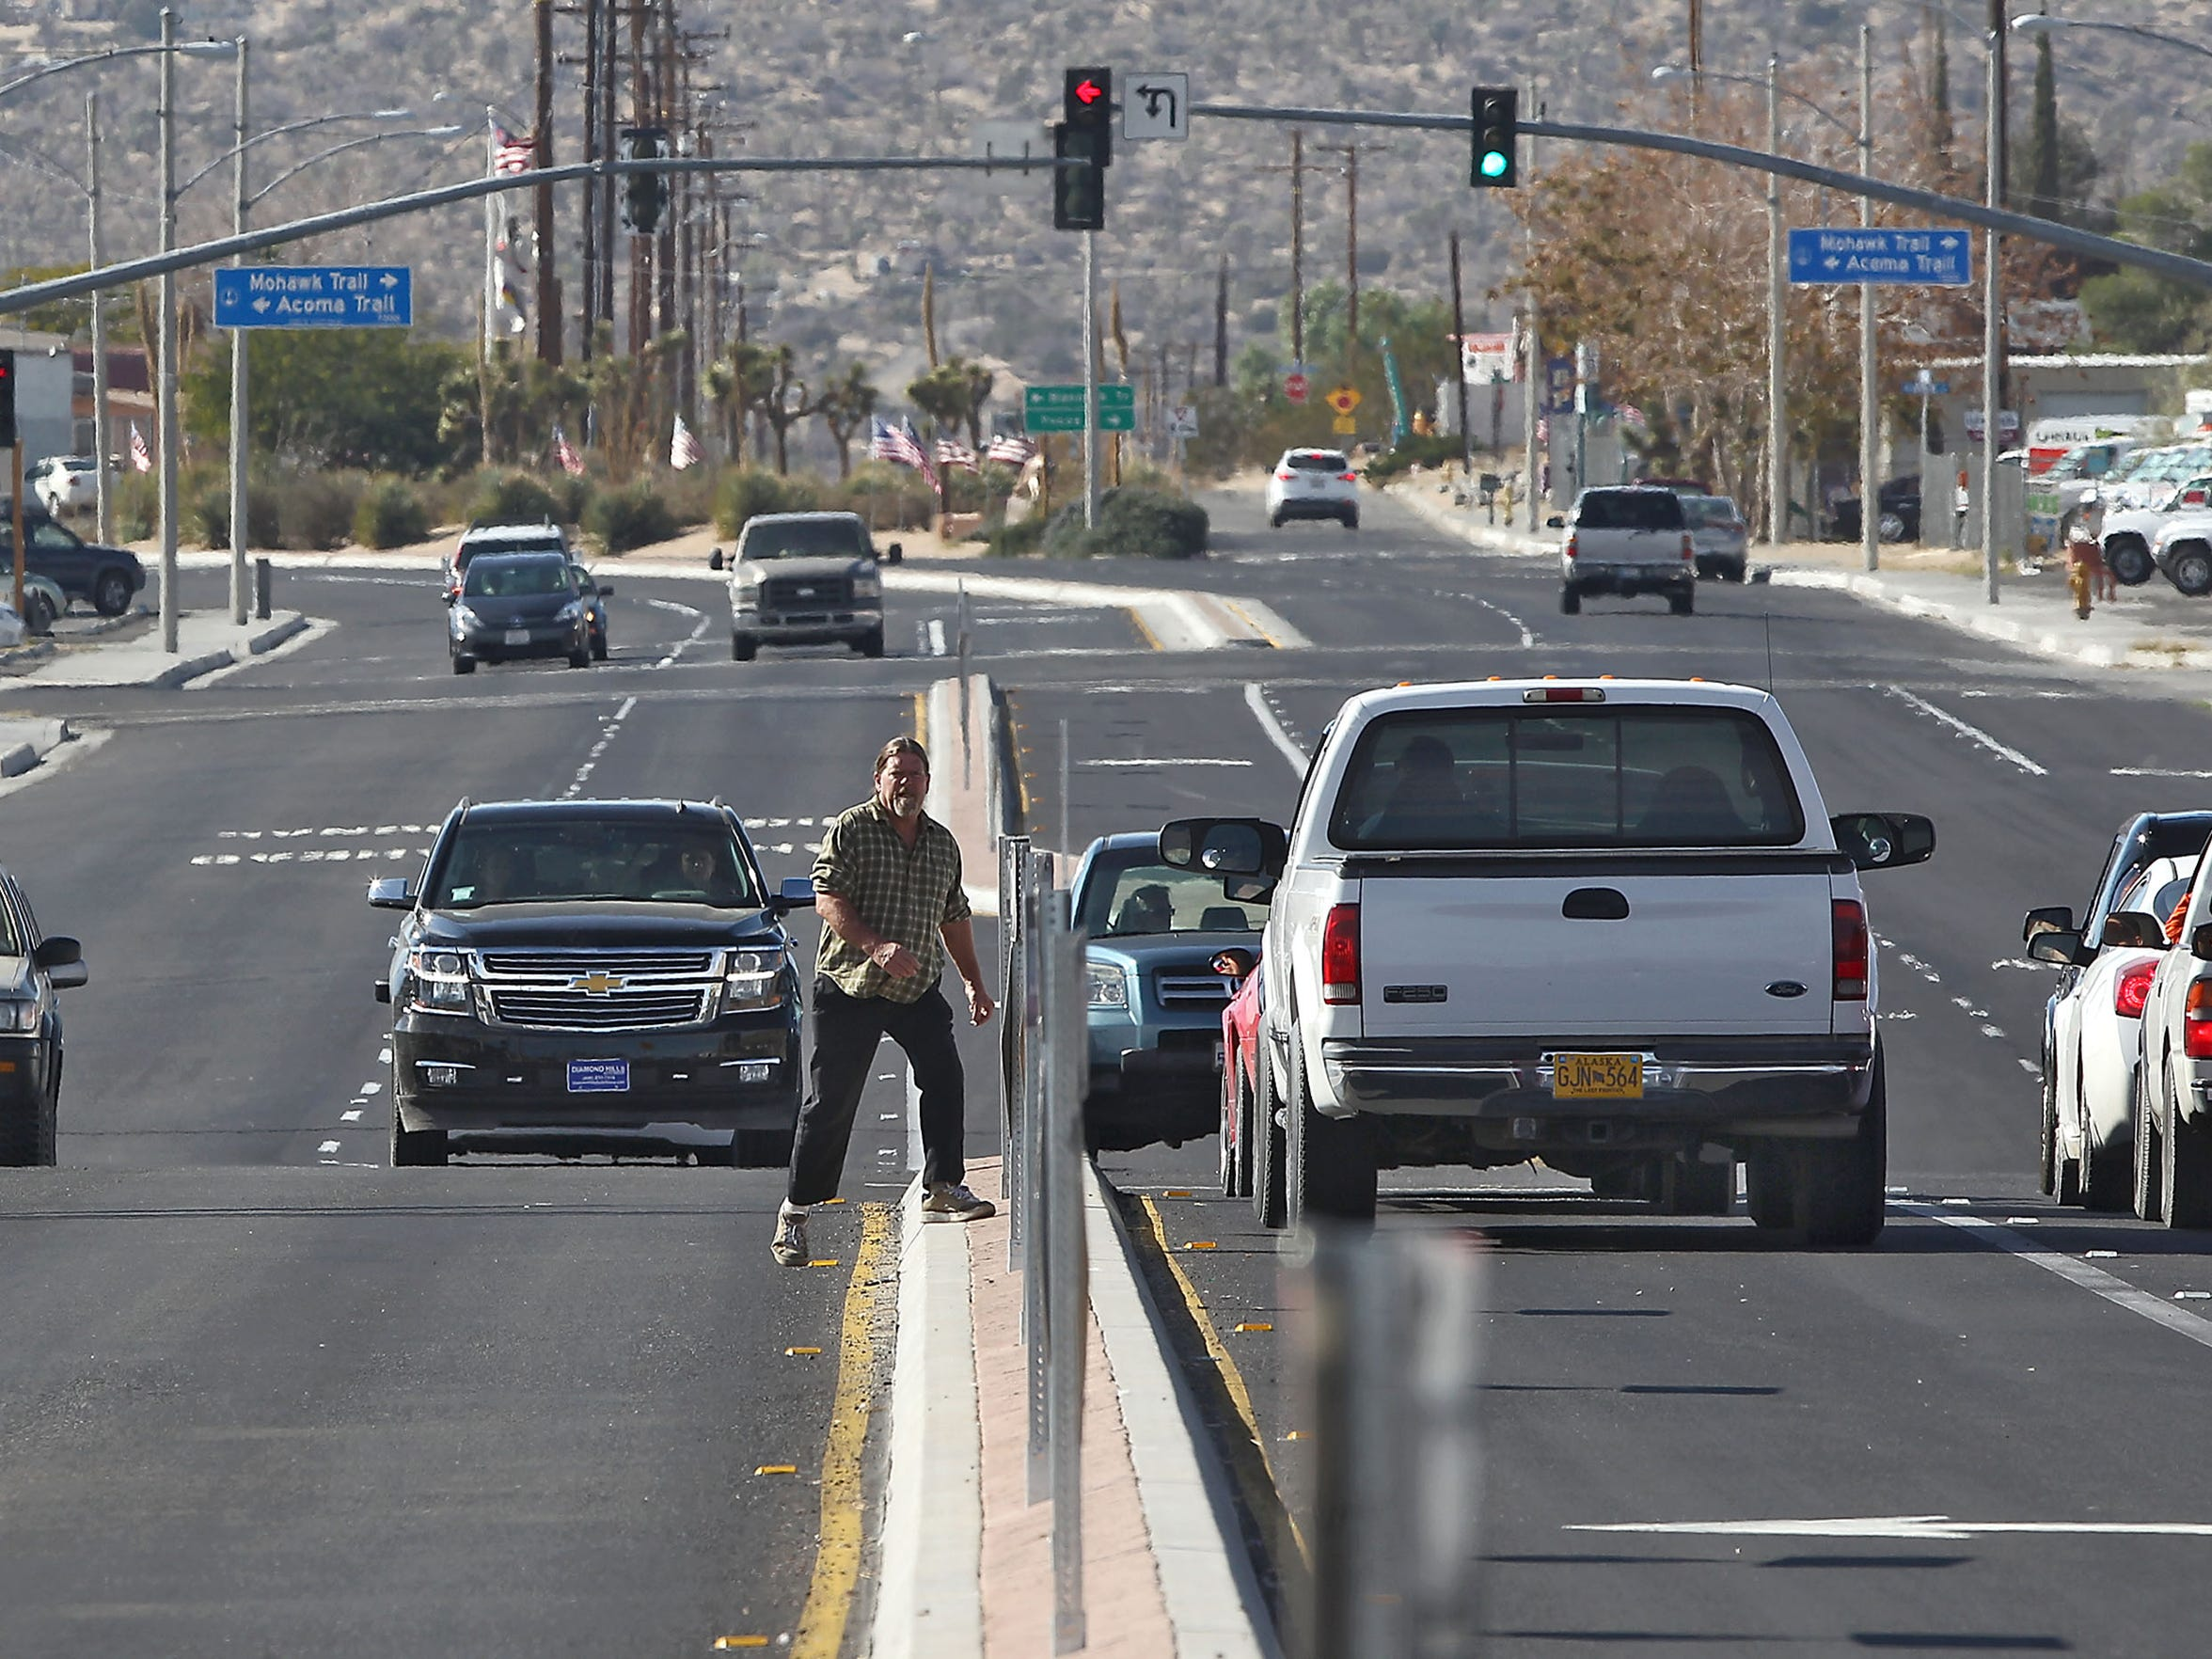 Highway 62 three times as deadly as average California road